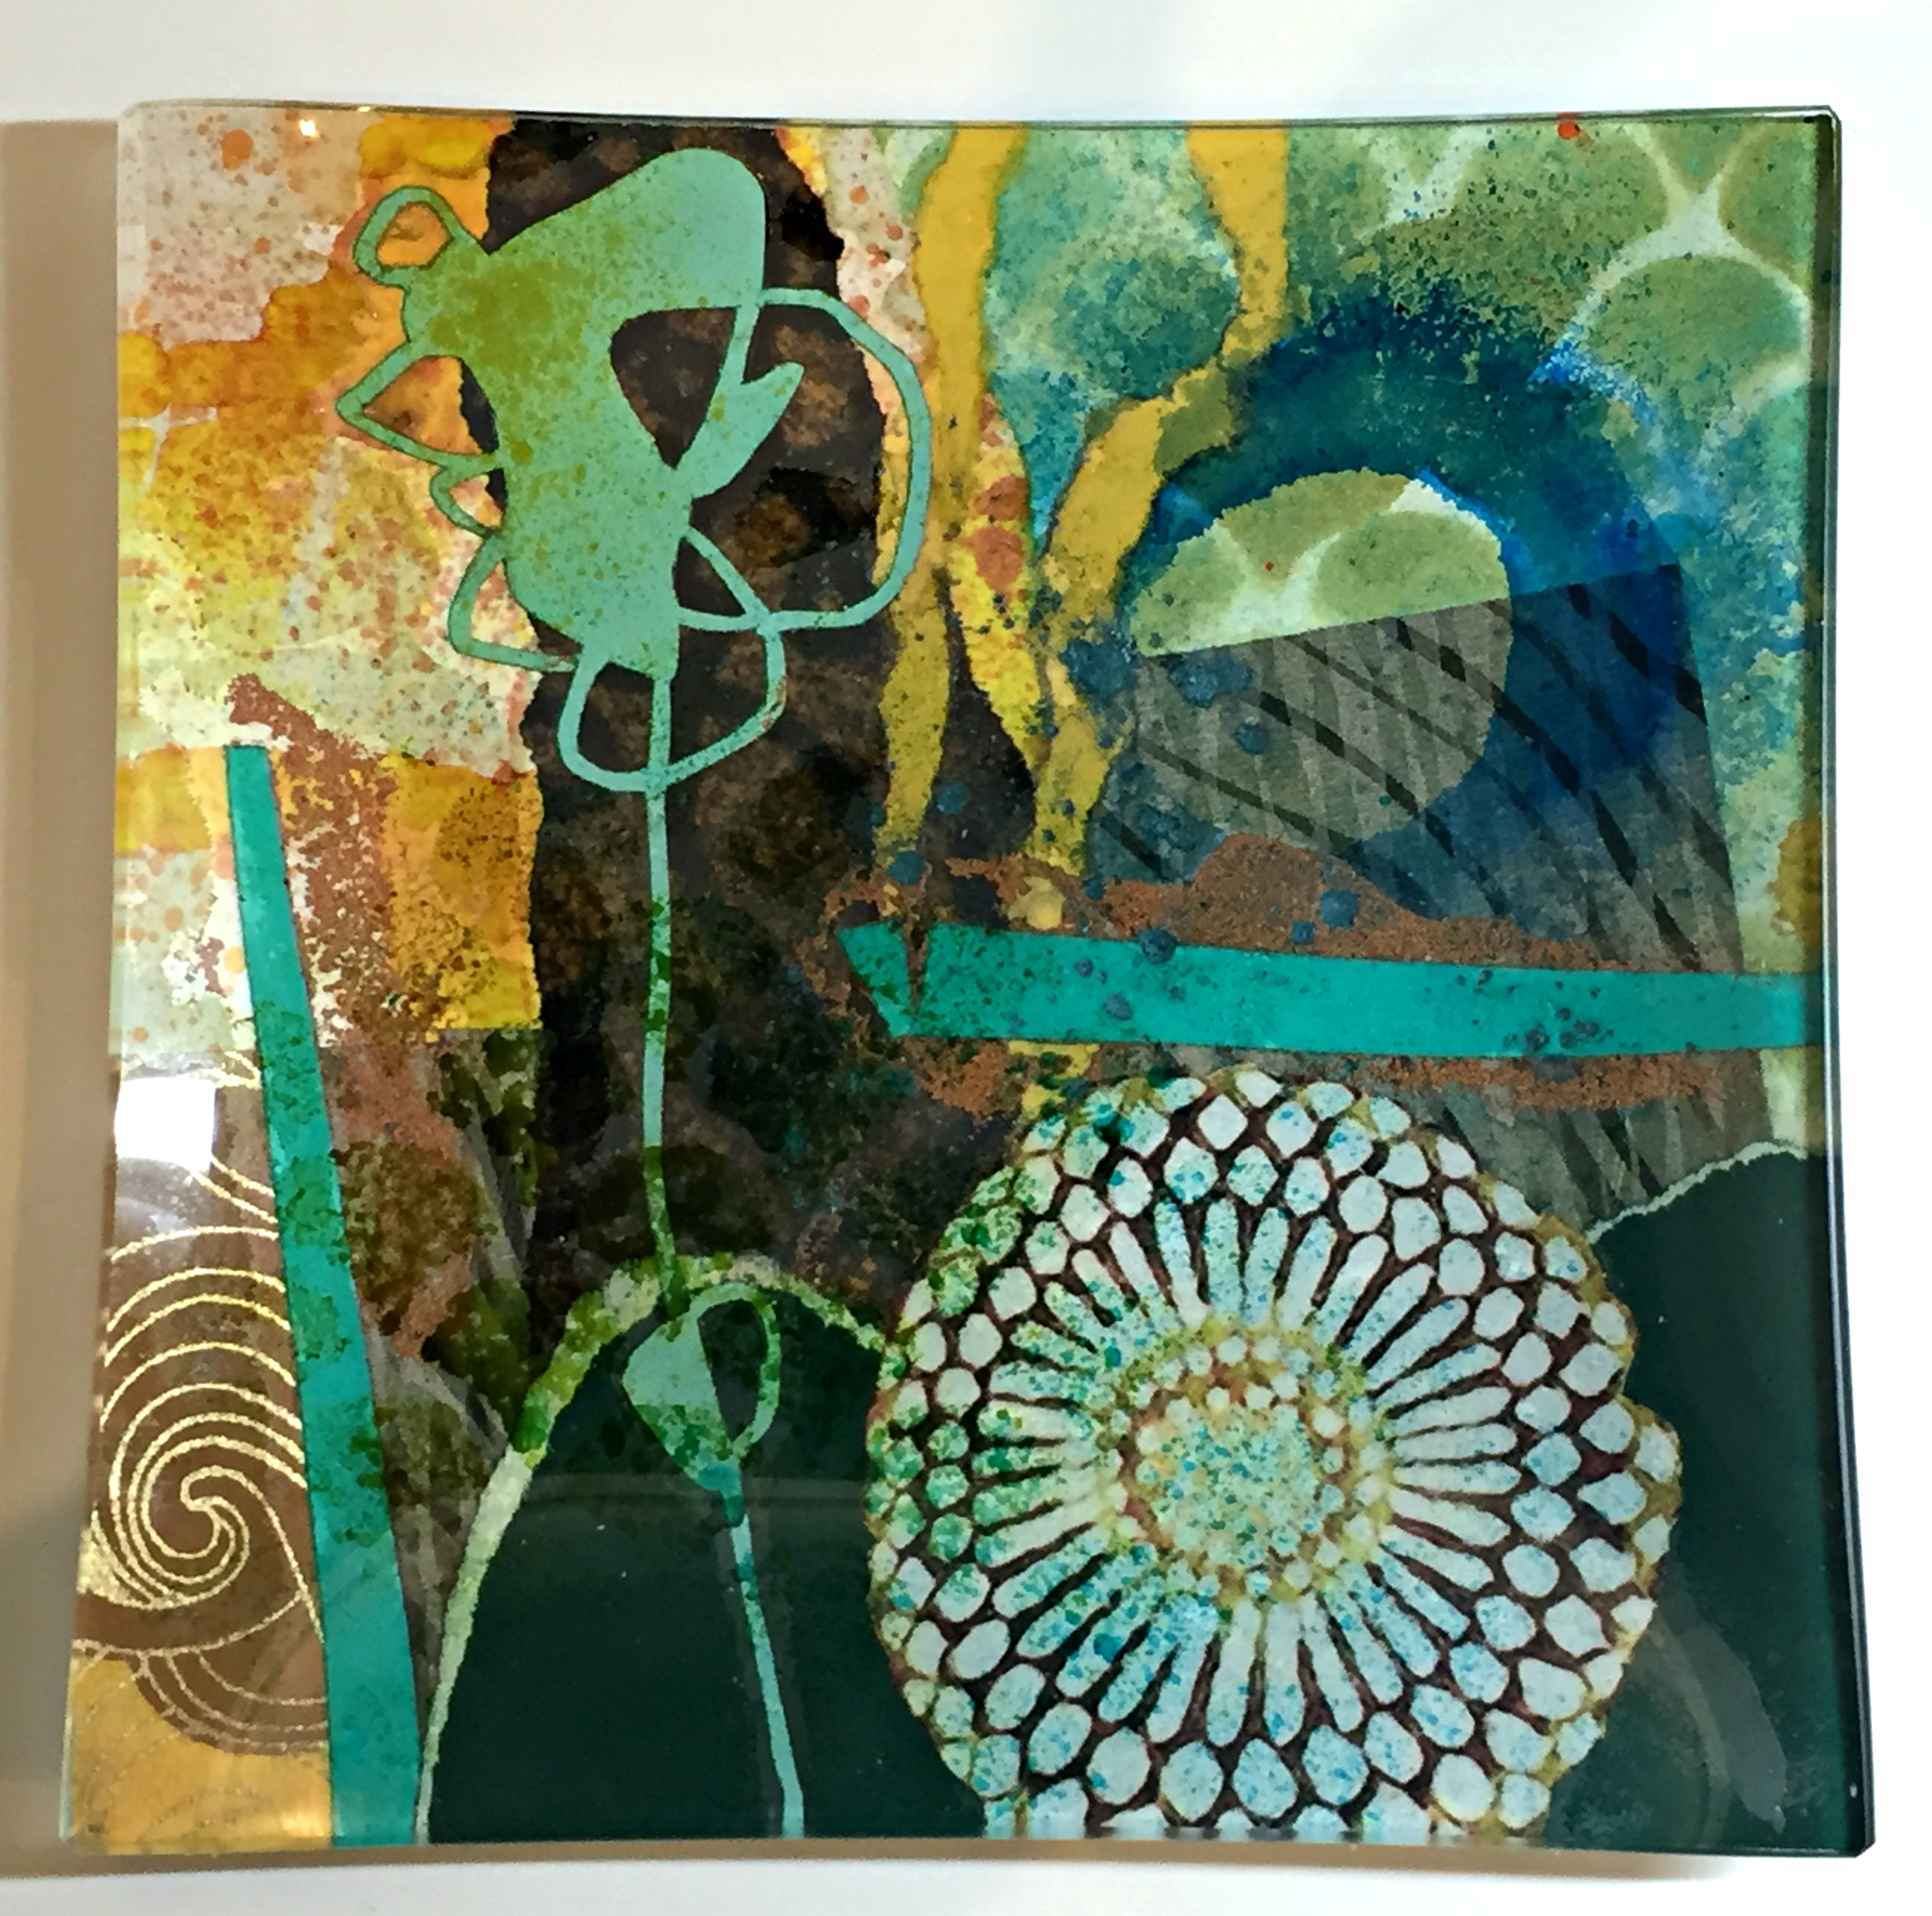 Silhouettes and Reflections, glass side plate by Julie Bell | Effusion Art Gallery + Cast Glass Studio, Invermere BC